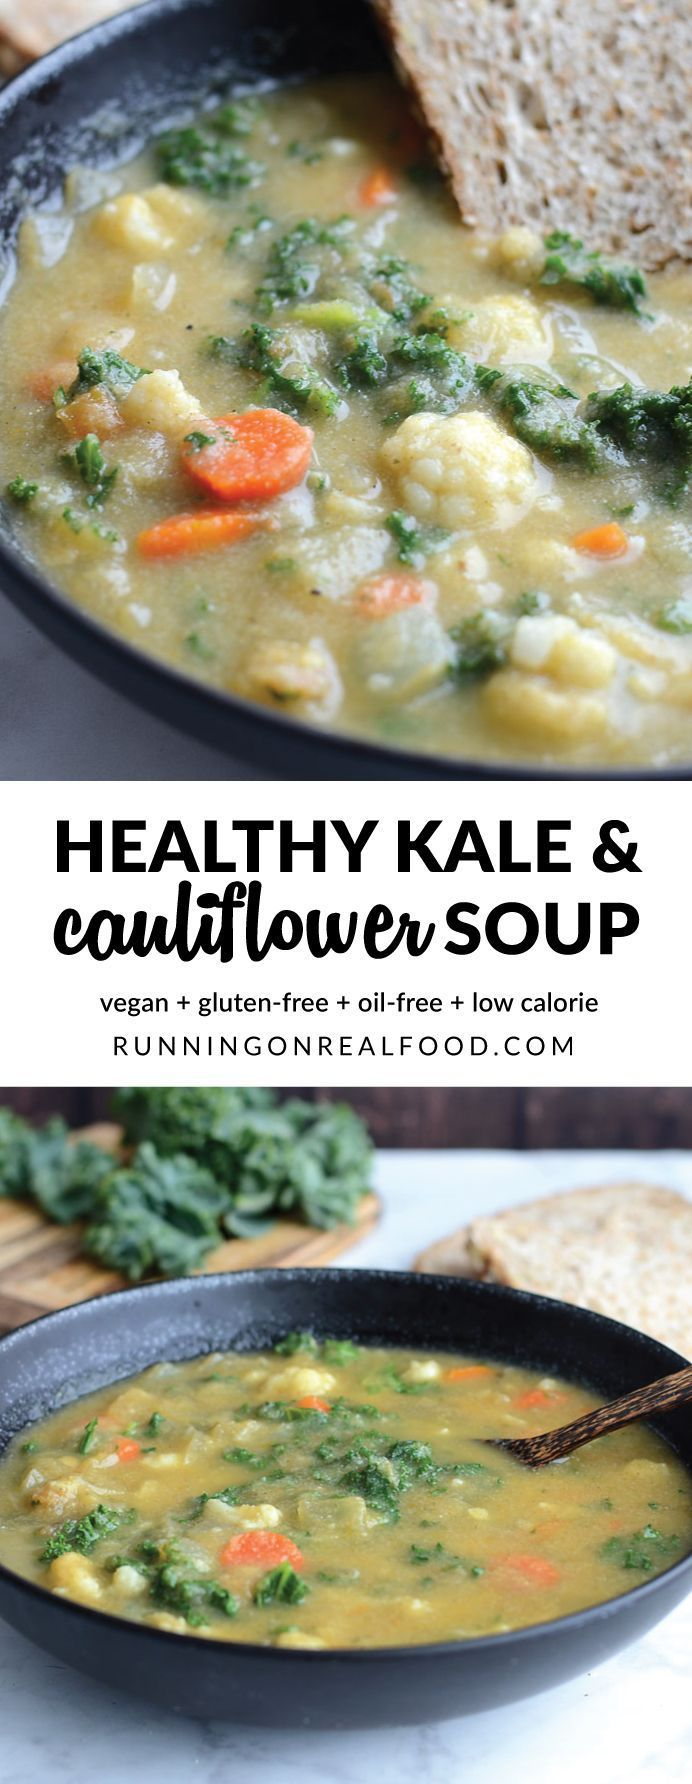 Low in calories, high in flavour - this healthy kale and cauliflower soup is satisfying, comforting and nutrient-rich. Ready in 20 minutes with just a handful of everyday ingredients. Vegan. Recipe: http://runningonrealfood.com/kale-and-cauliflower-soup/